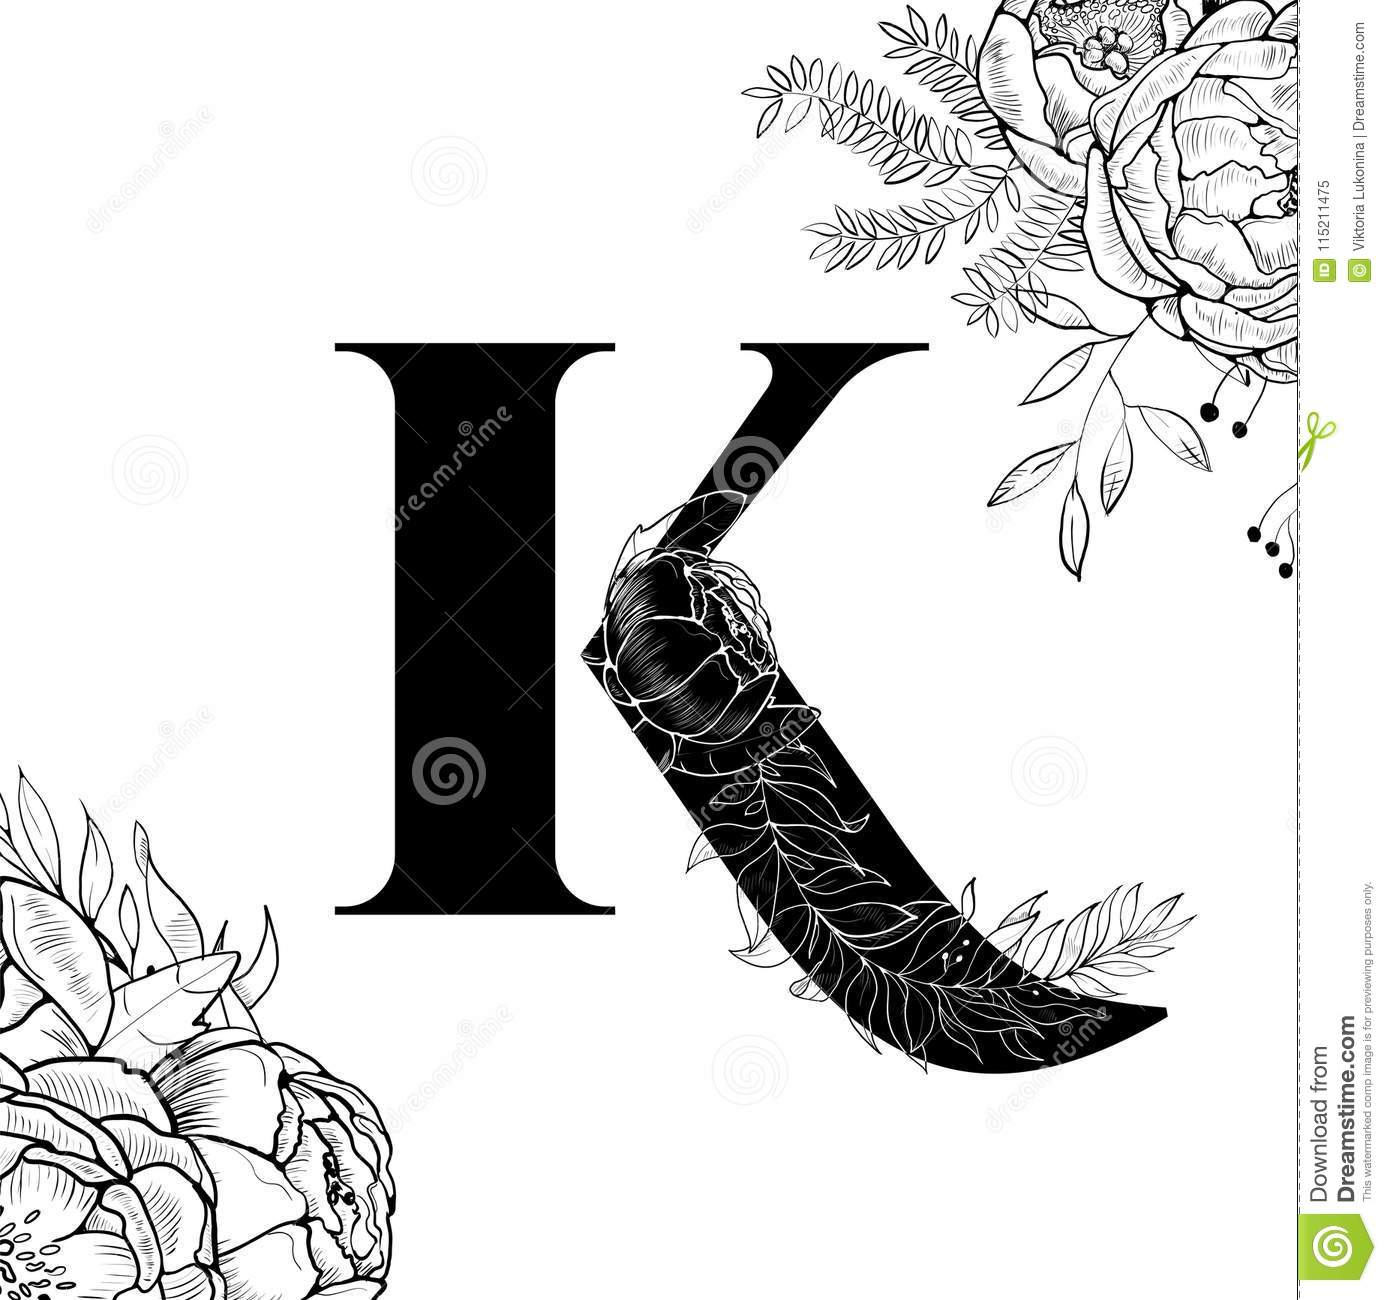 Flower Alphabet Letter K Pattern Stock Vector - Illustration ... on monogram letter template, fancy old english letter k, letter b template, fancy lowercase k, fancy monograms letter k, fancy graffiti letters, fancy letters d designs, letter y template, fancy letter k designs, fancy letter k wallpaper, fancy initial monogram fonts, printable letter m template, fancy script lettering, letter o template, fancy script letter k, fancy lettering fonts, kangaroo template, fancy calligraphy fonts, letter z template,